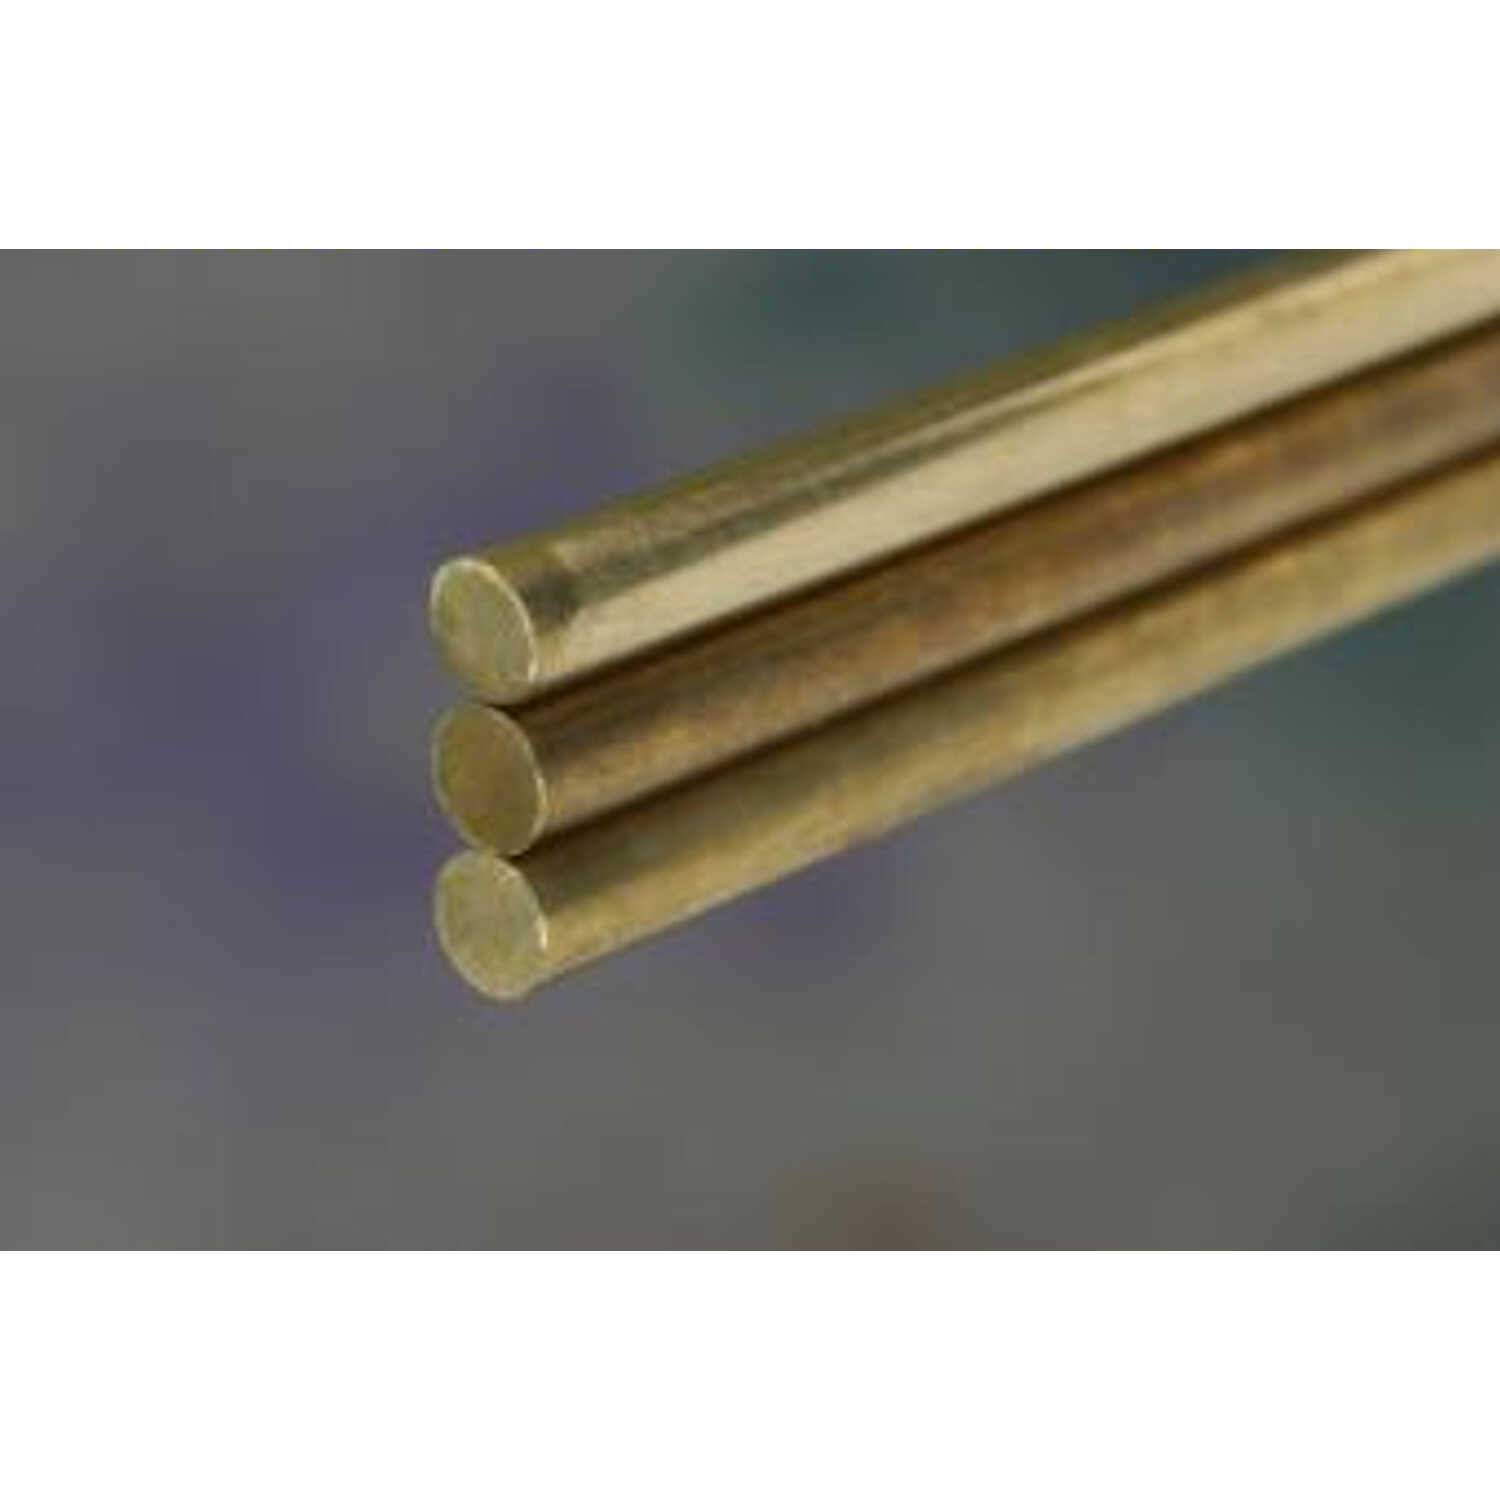 K&S  1/4 in. Dia. x 36 in. L Brass Rod  1 pk